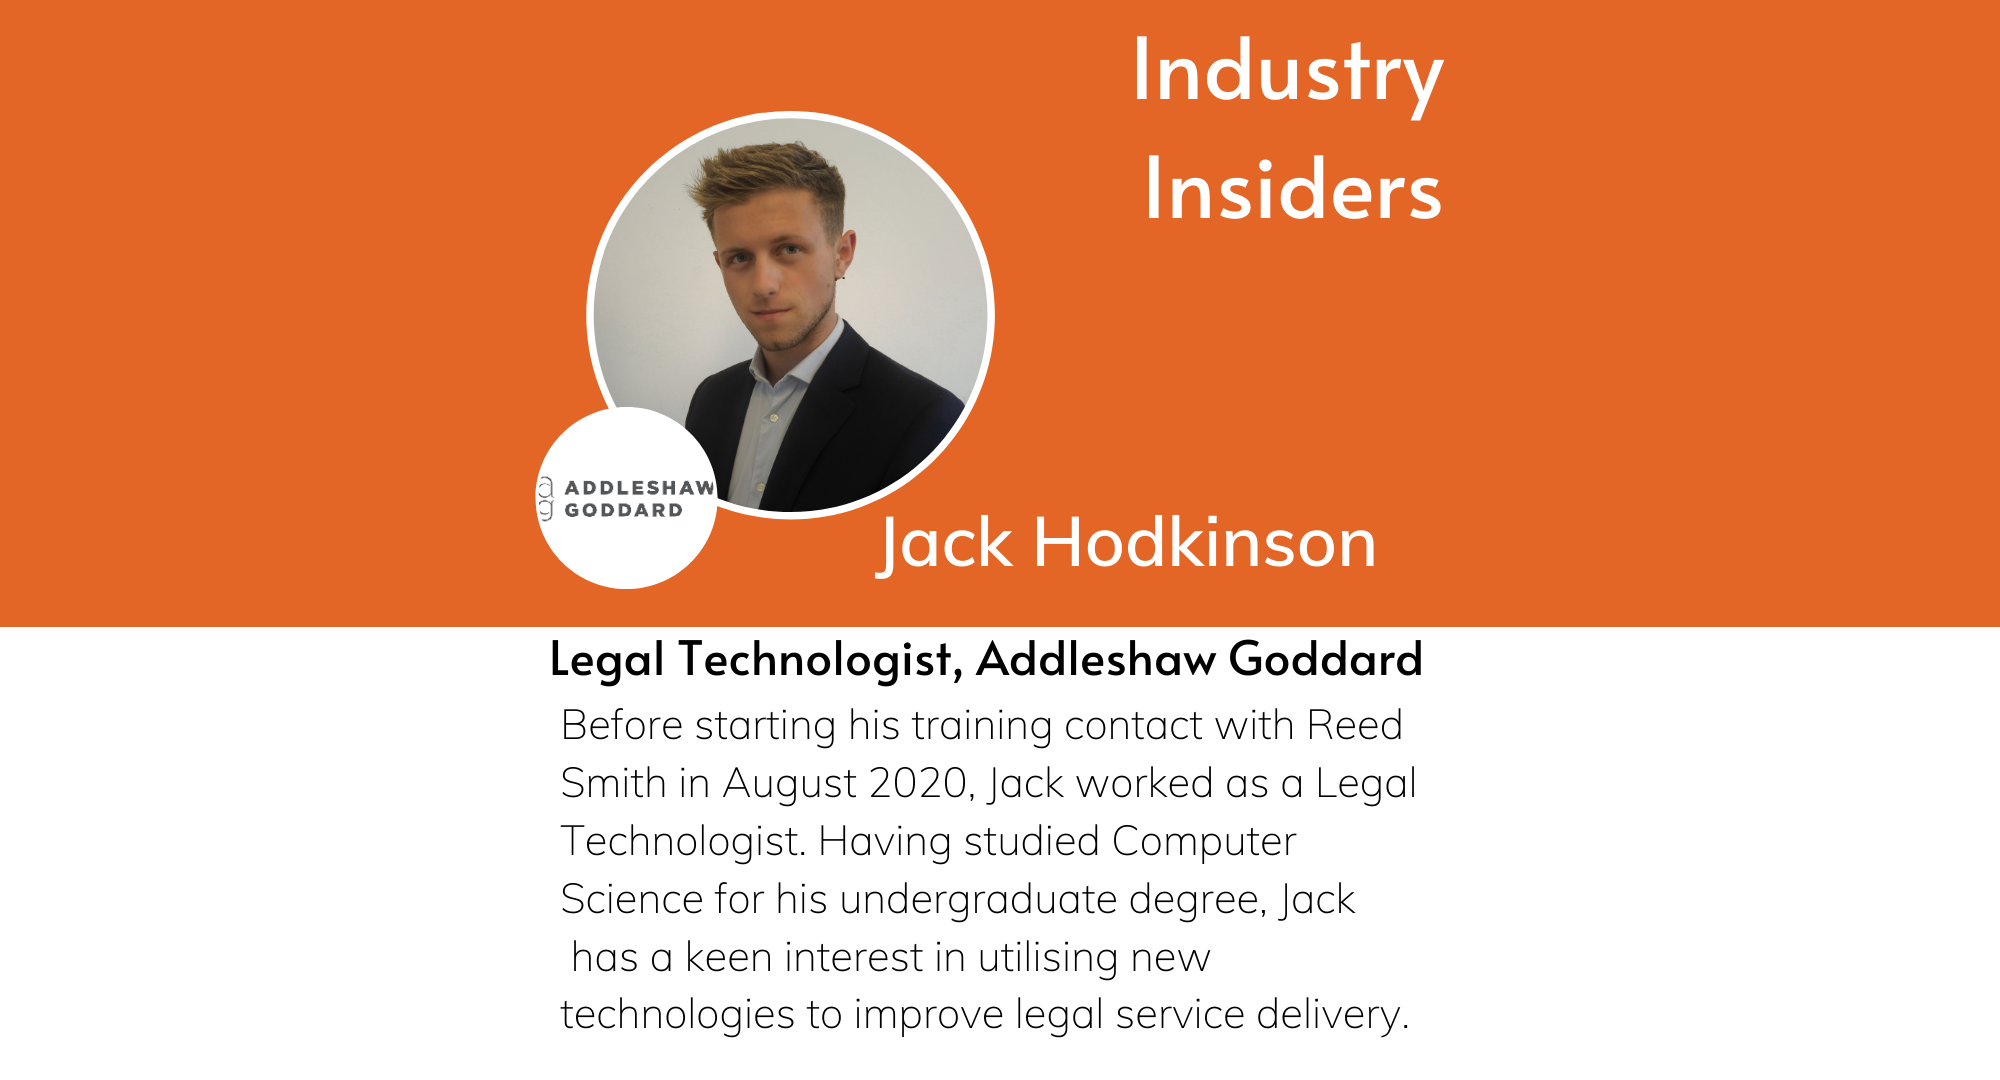 Industry Insiders - The Work of a Legal Technologist